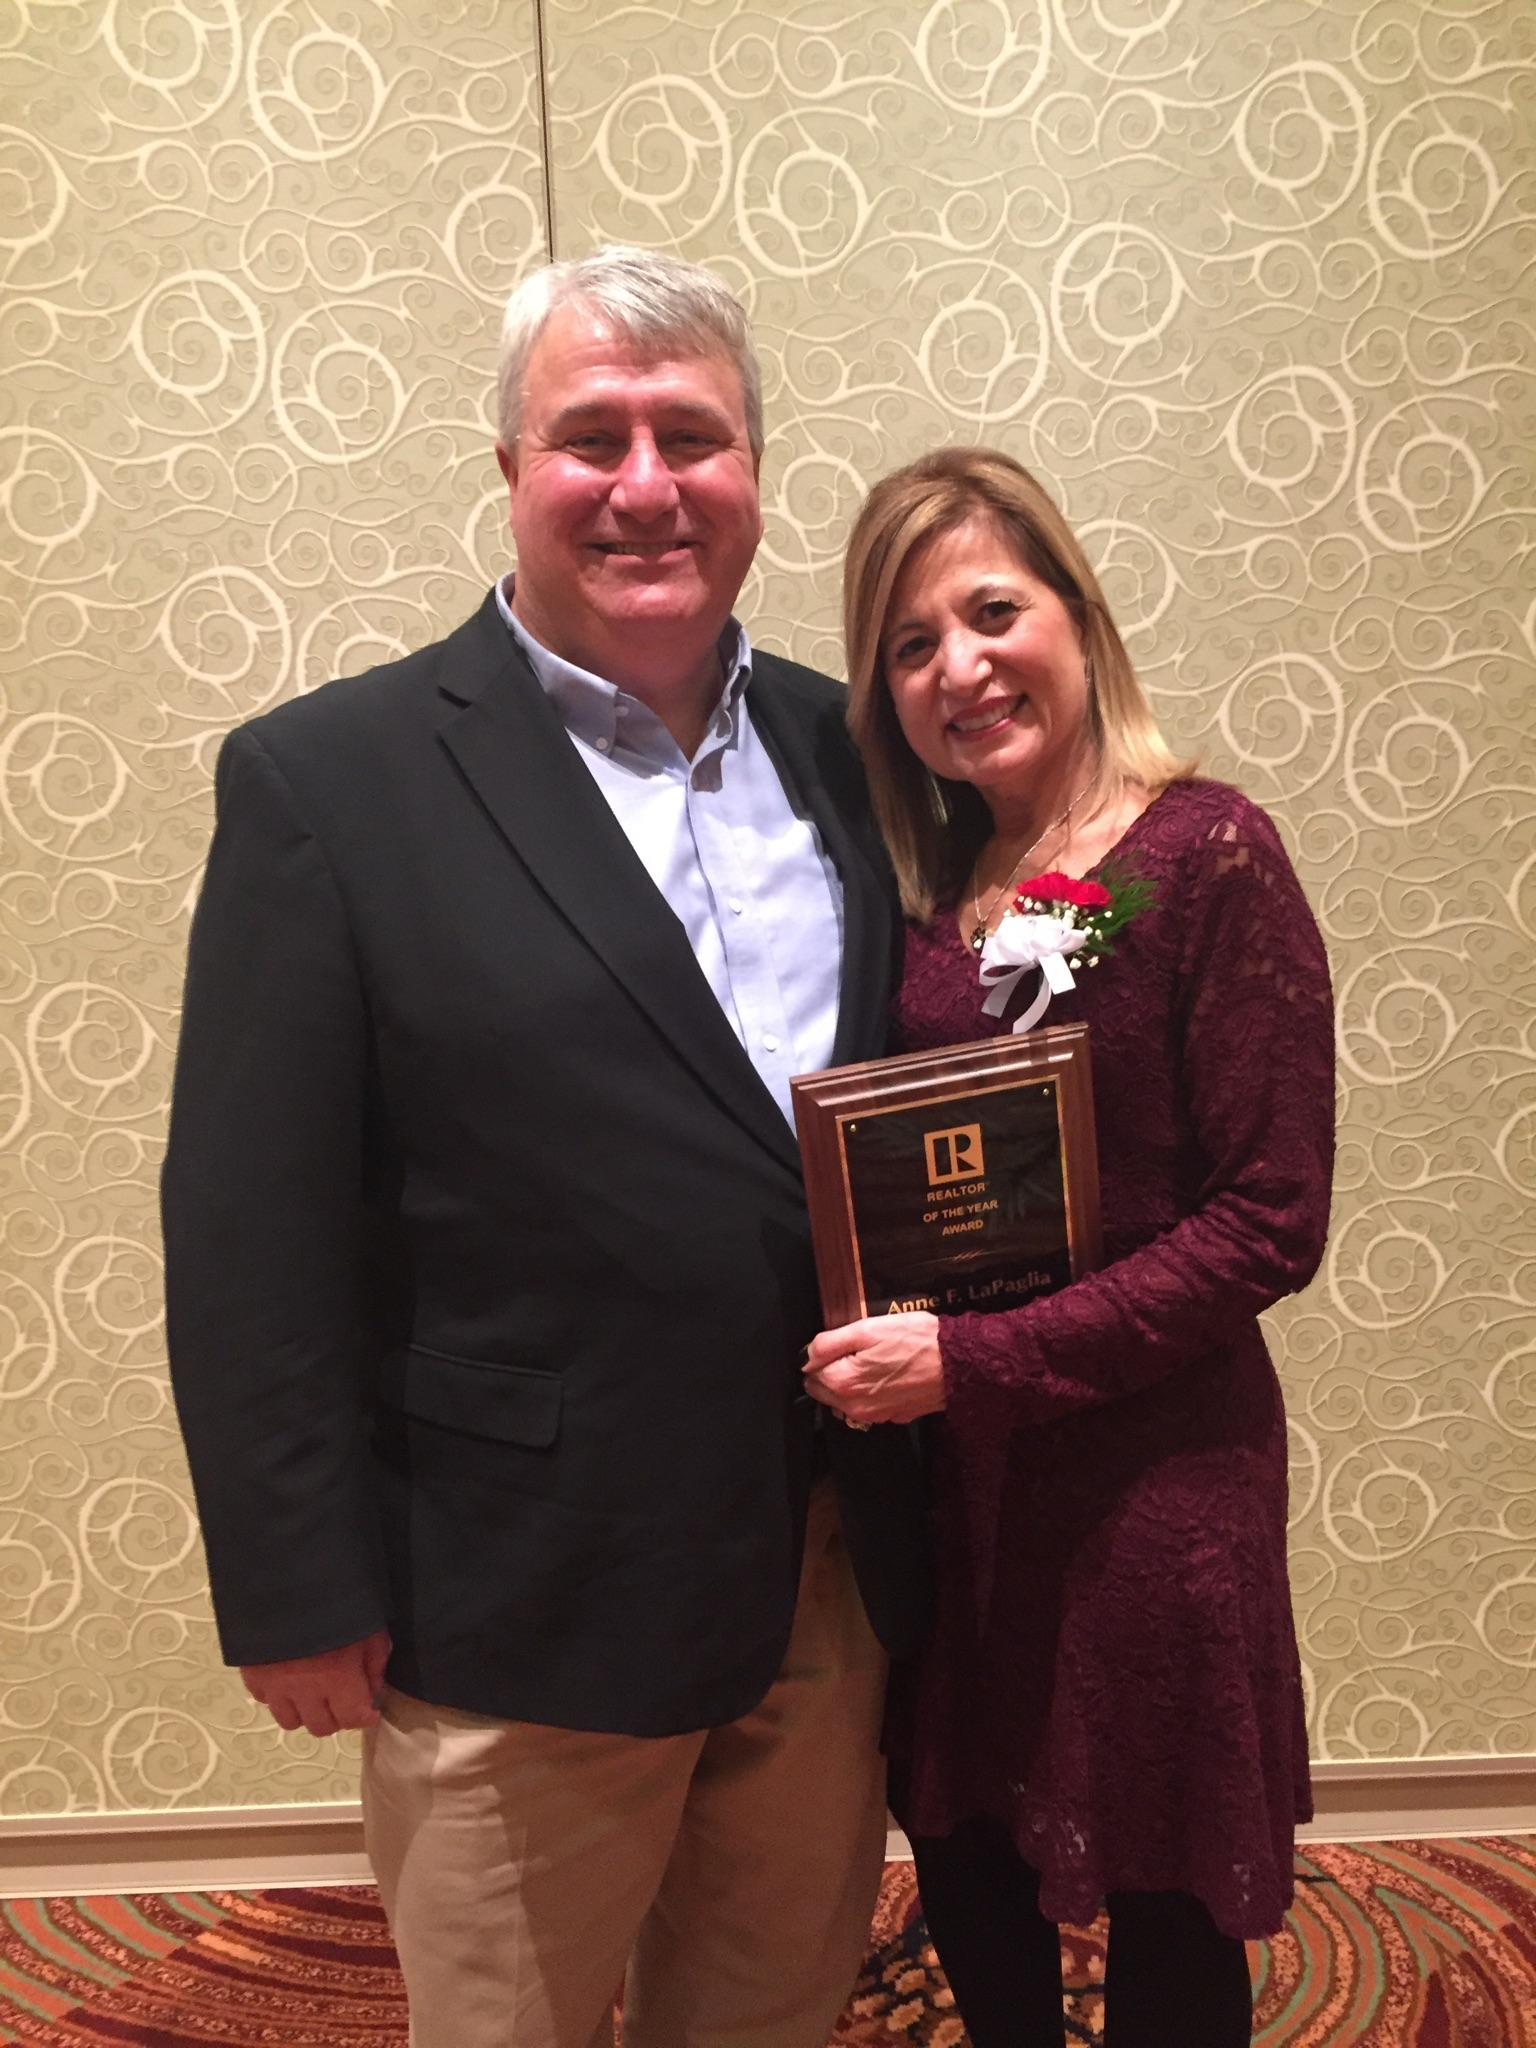 Anne LaPaglia CCBR 2016 Realtor of the Year